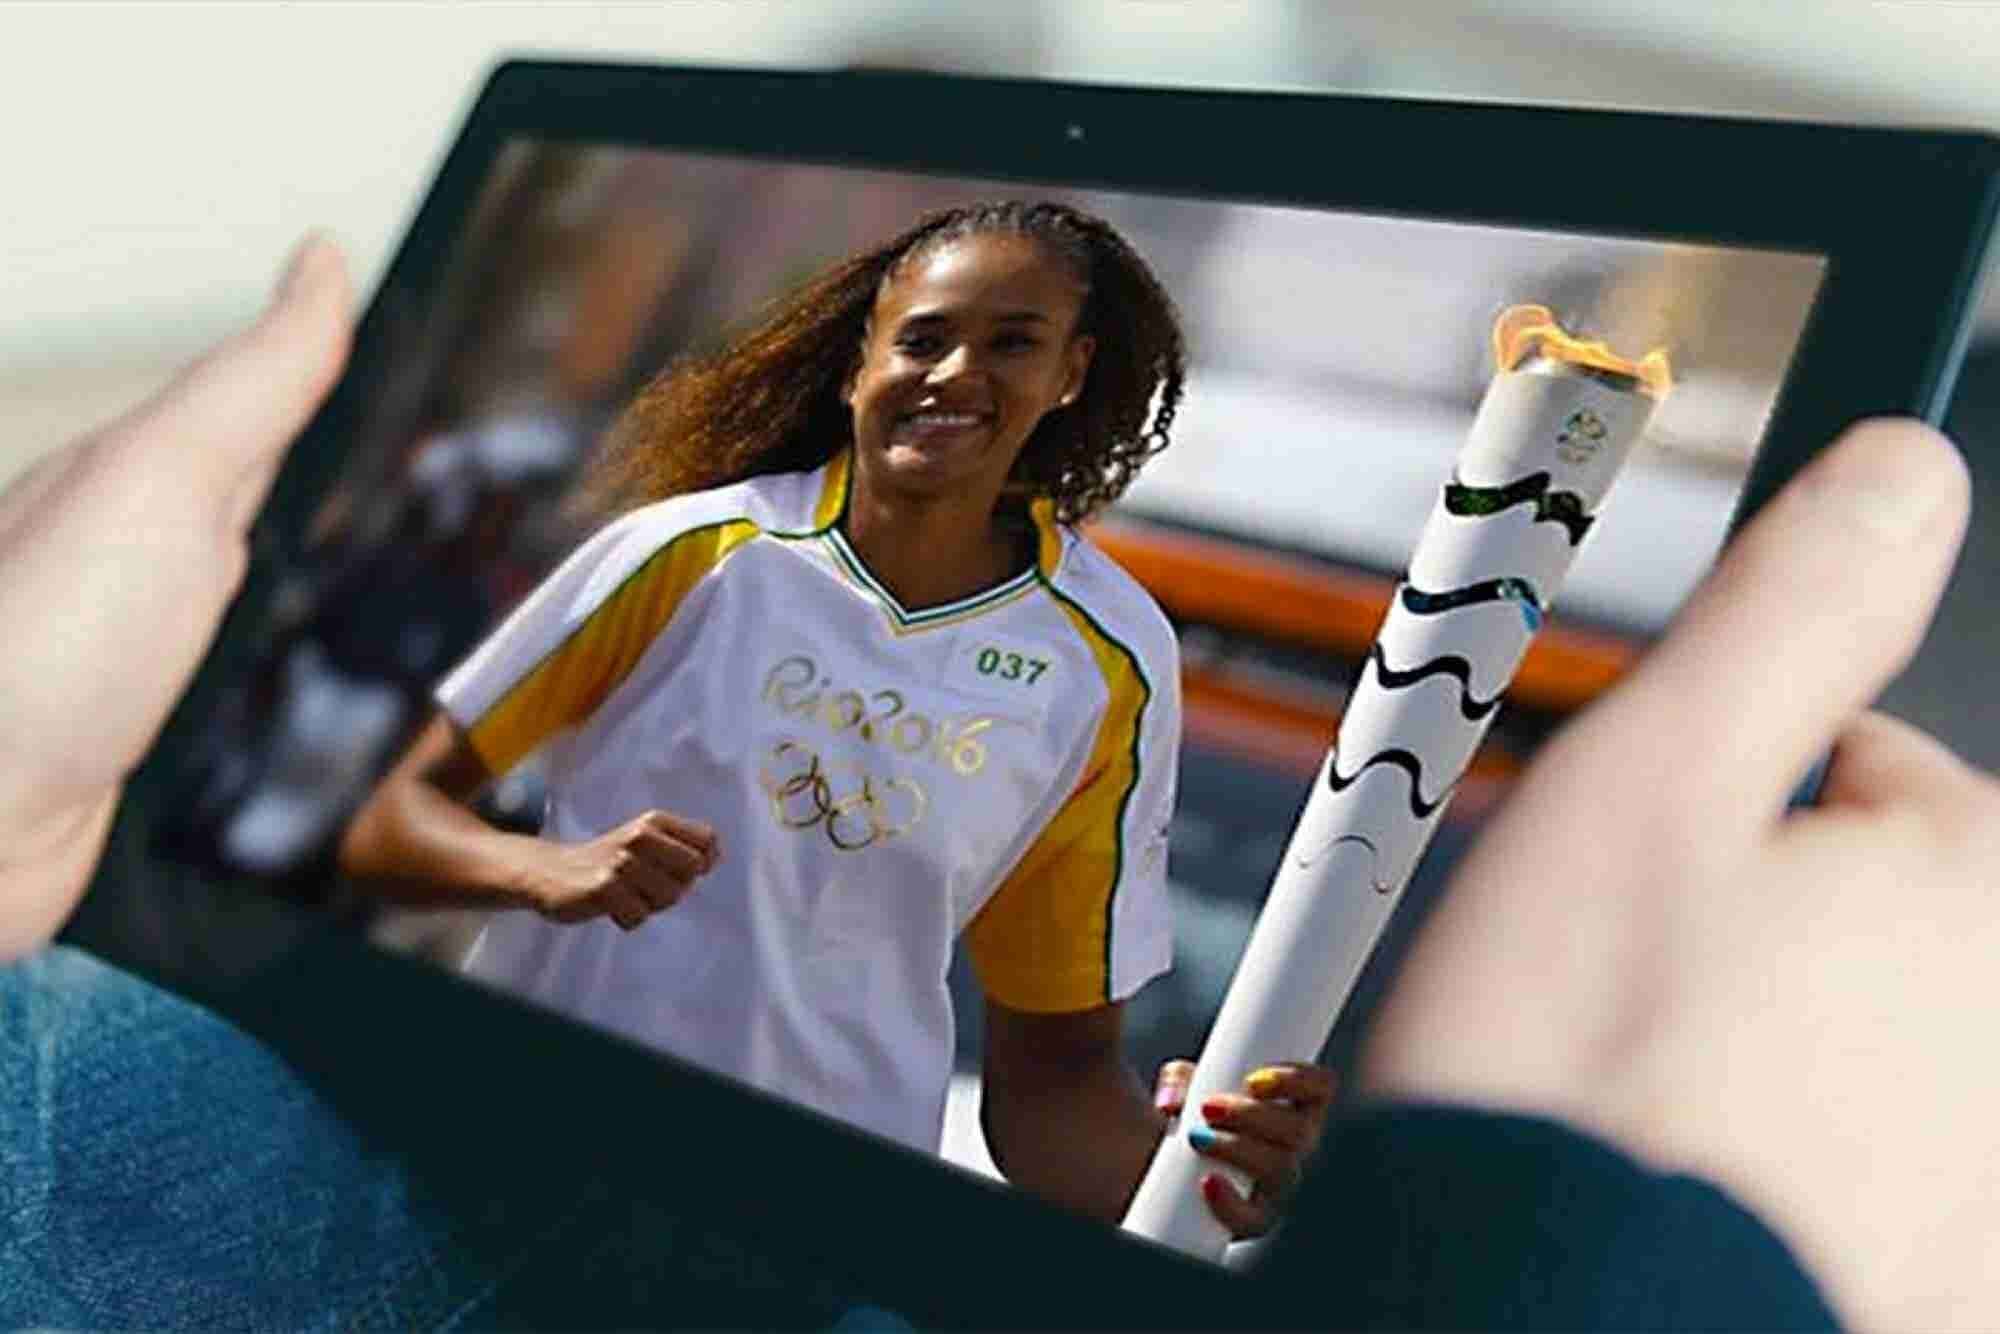 How to Watch the Rio 2016 Olympics Online